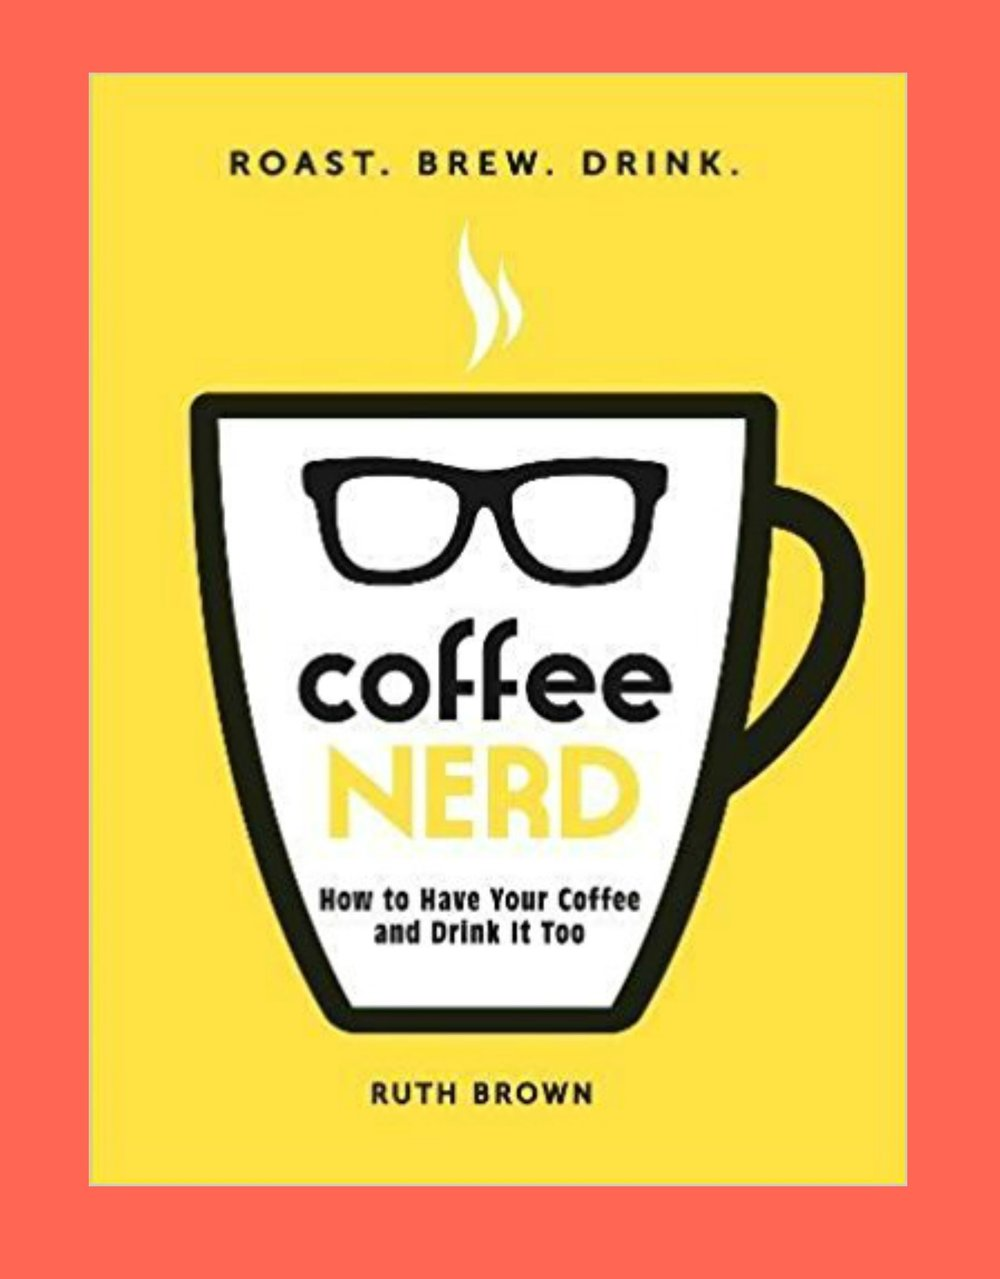 Coffee Nerd  - I've been fangirling over